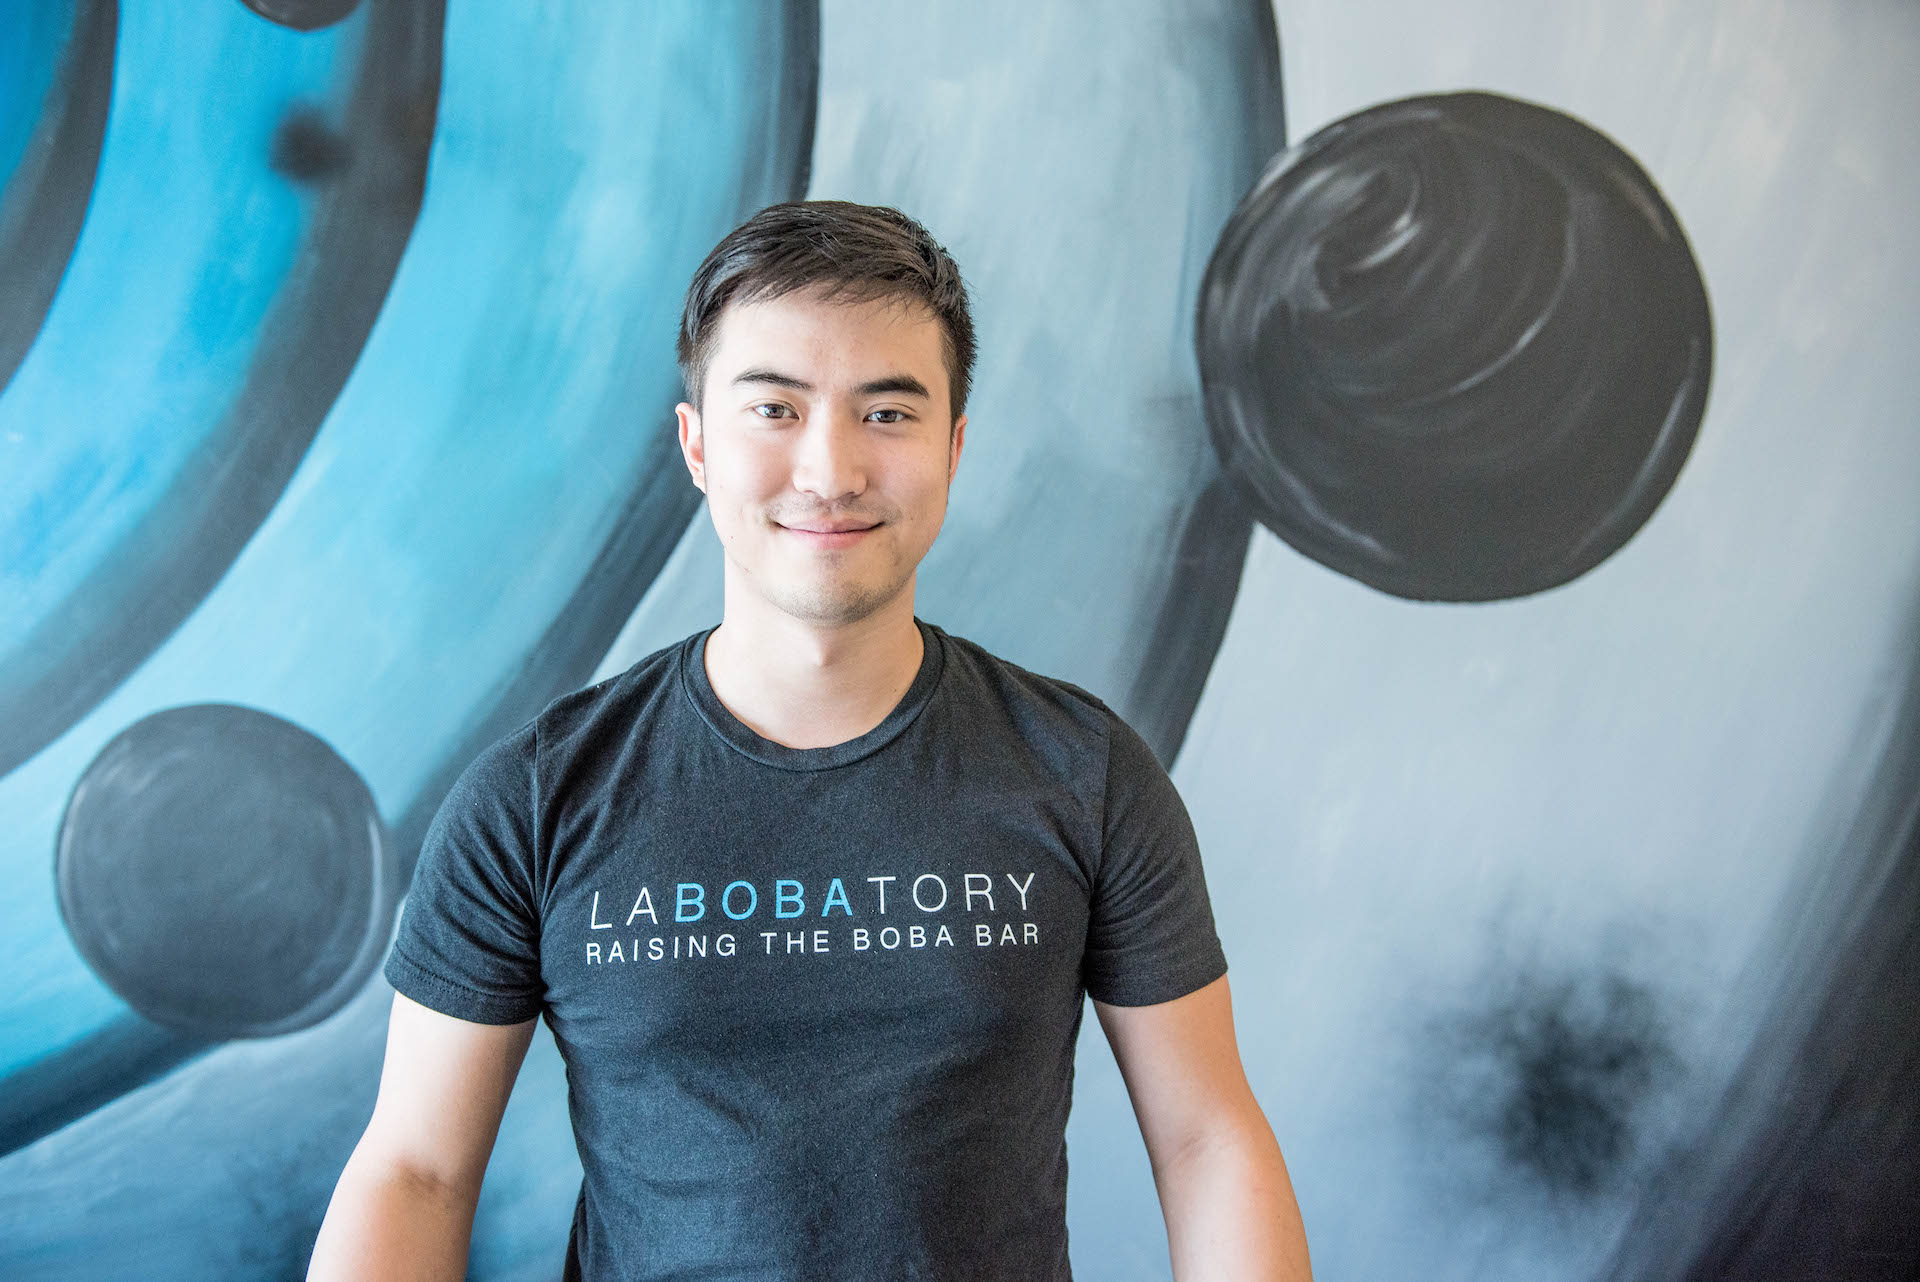 Labobatory owner Elton Keung opened his first boba shop by fundraising through Kickstarter.